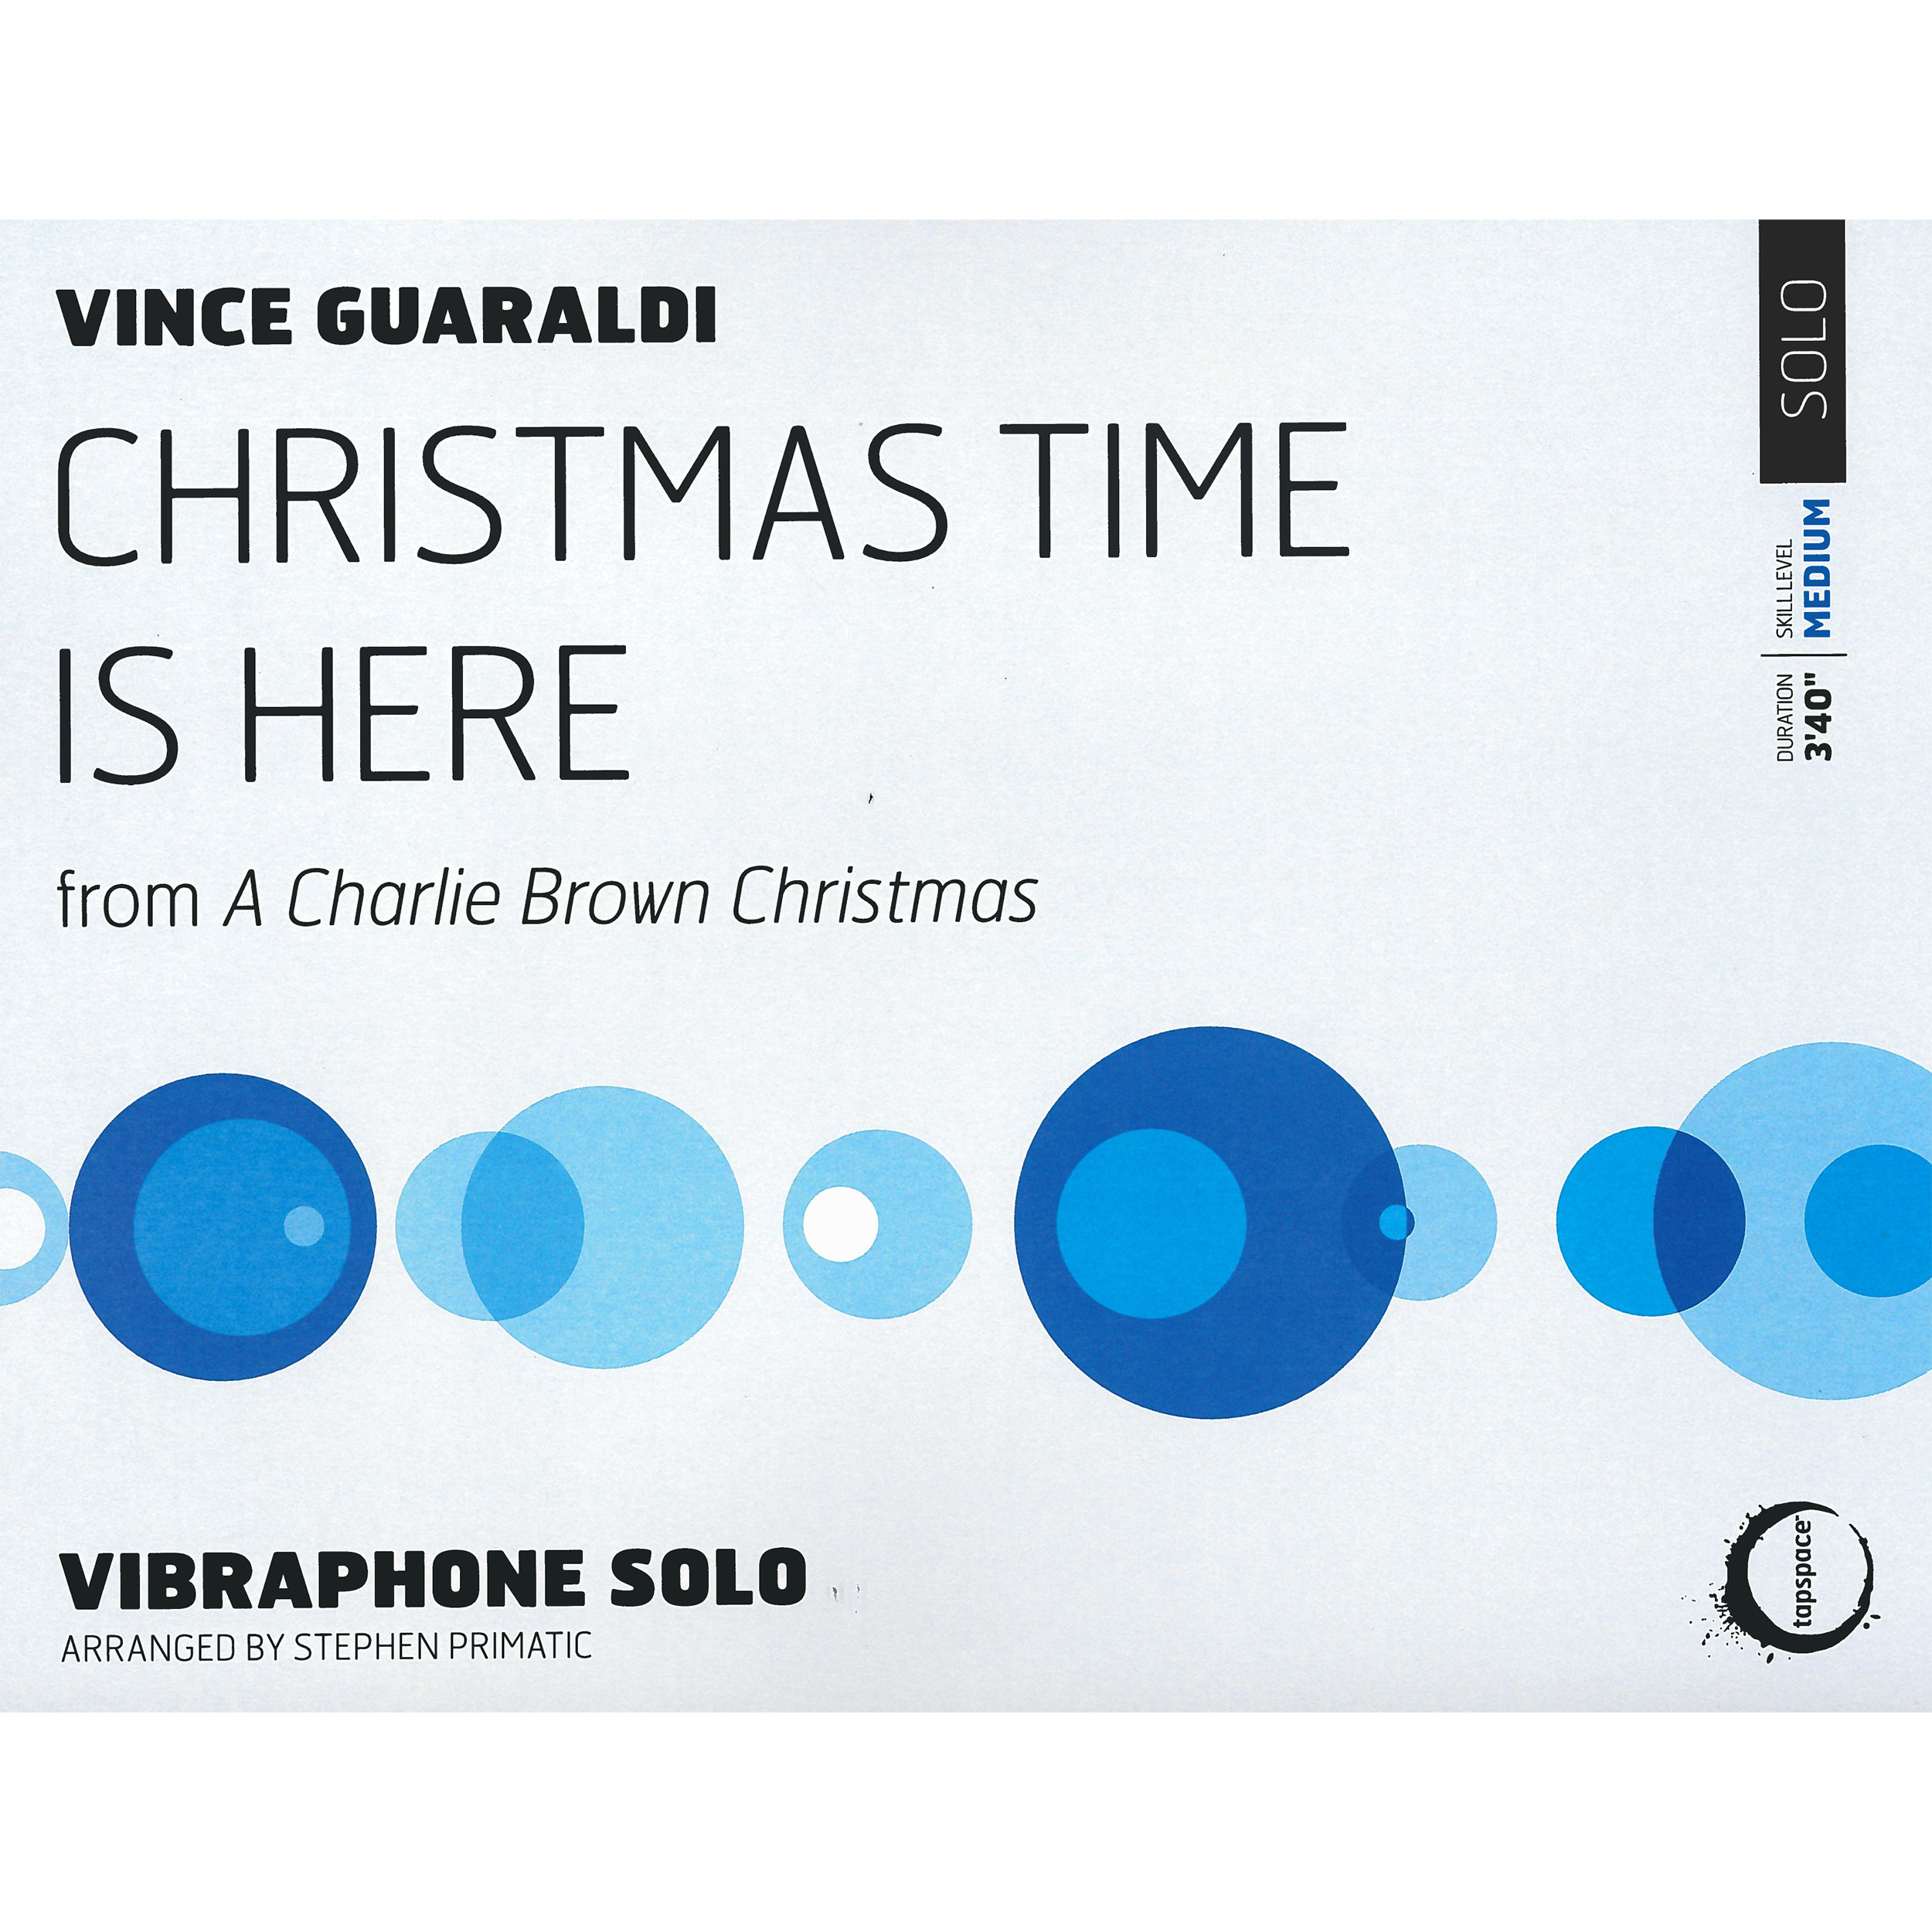 Christmas Time Is Here by Vince Guaraldi arr. Stephen Primatic